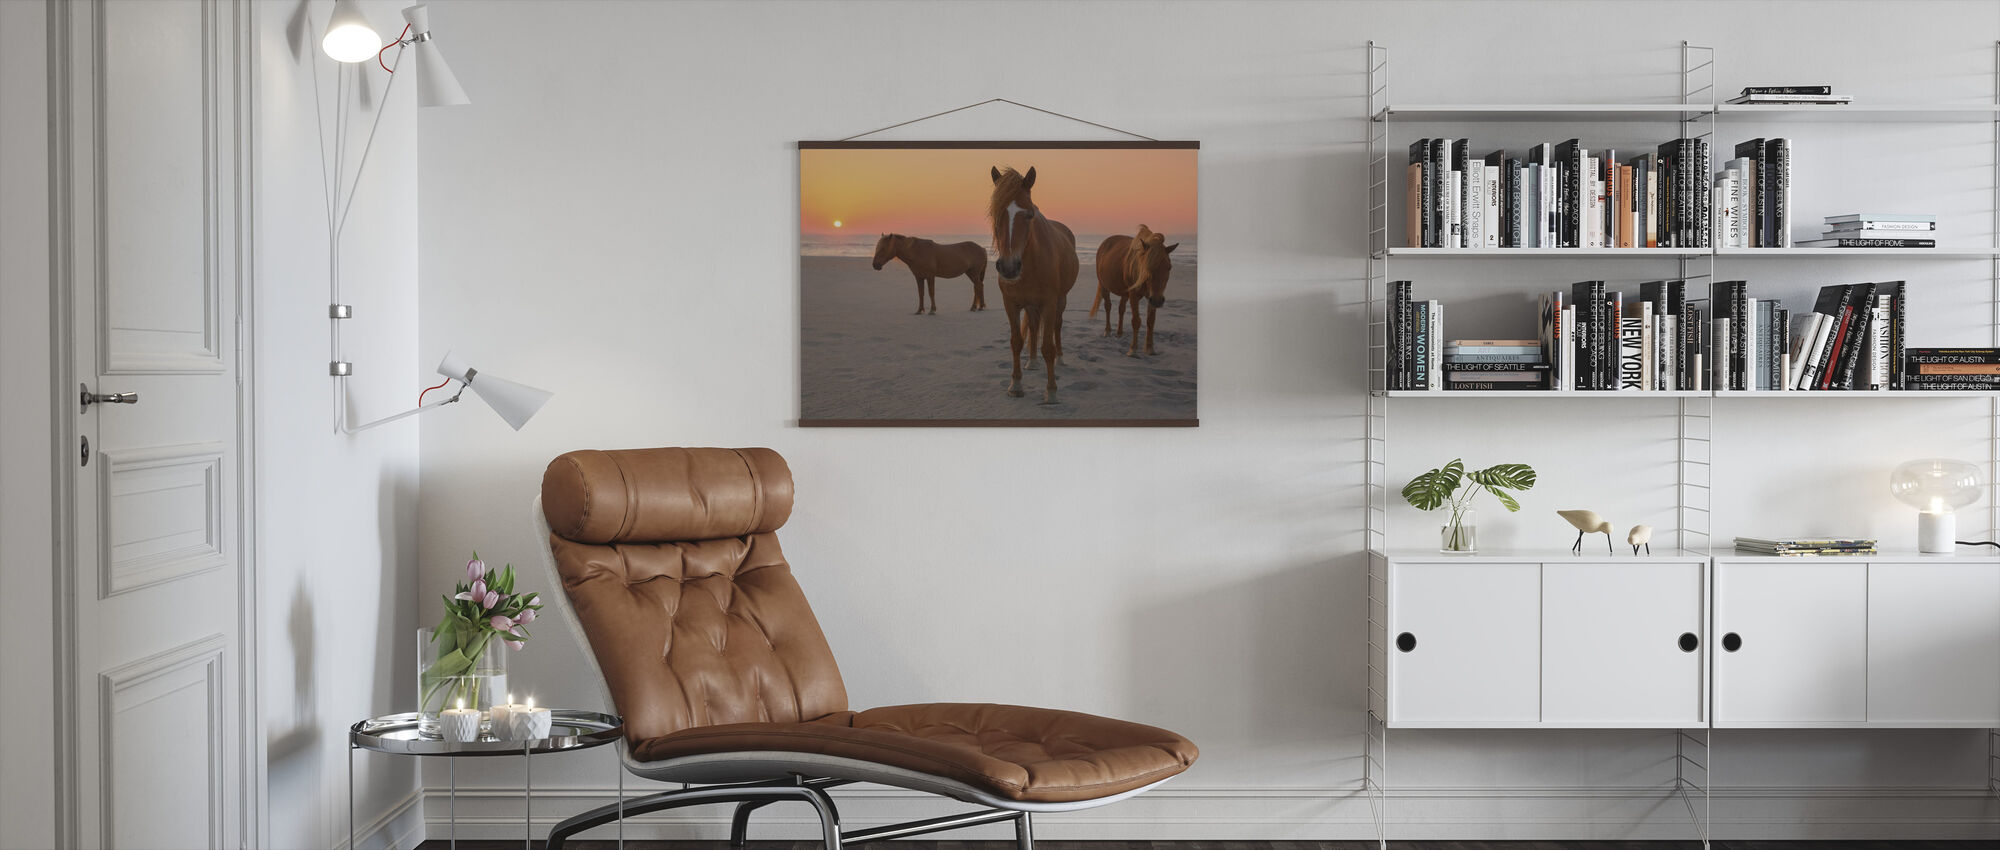 Chestnut Horses on Sunset Beach - Poster - Living Room